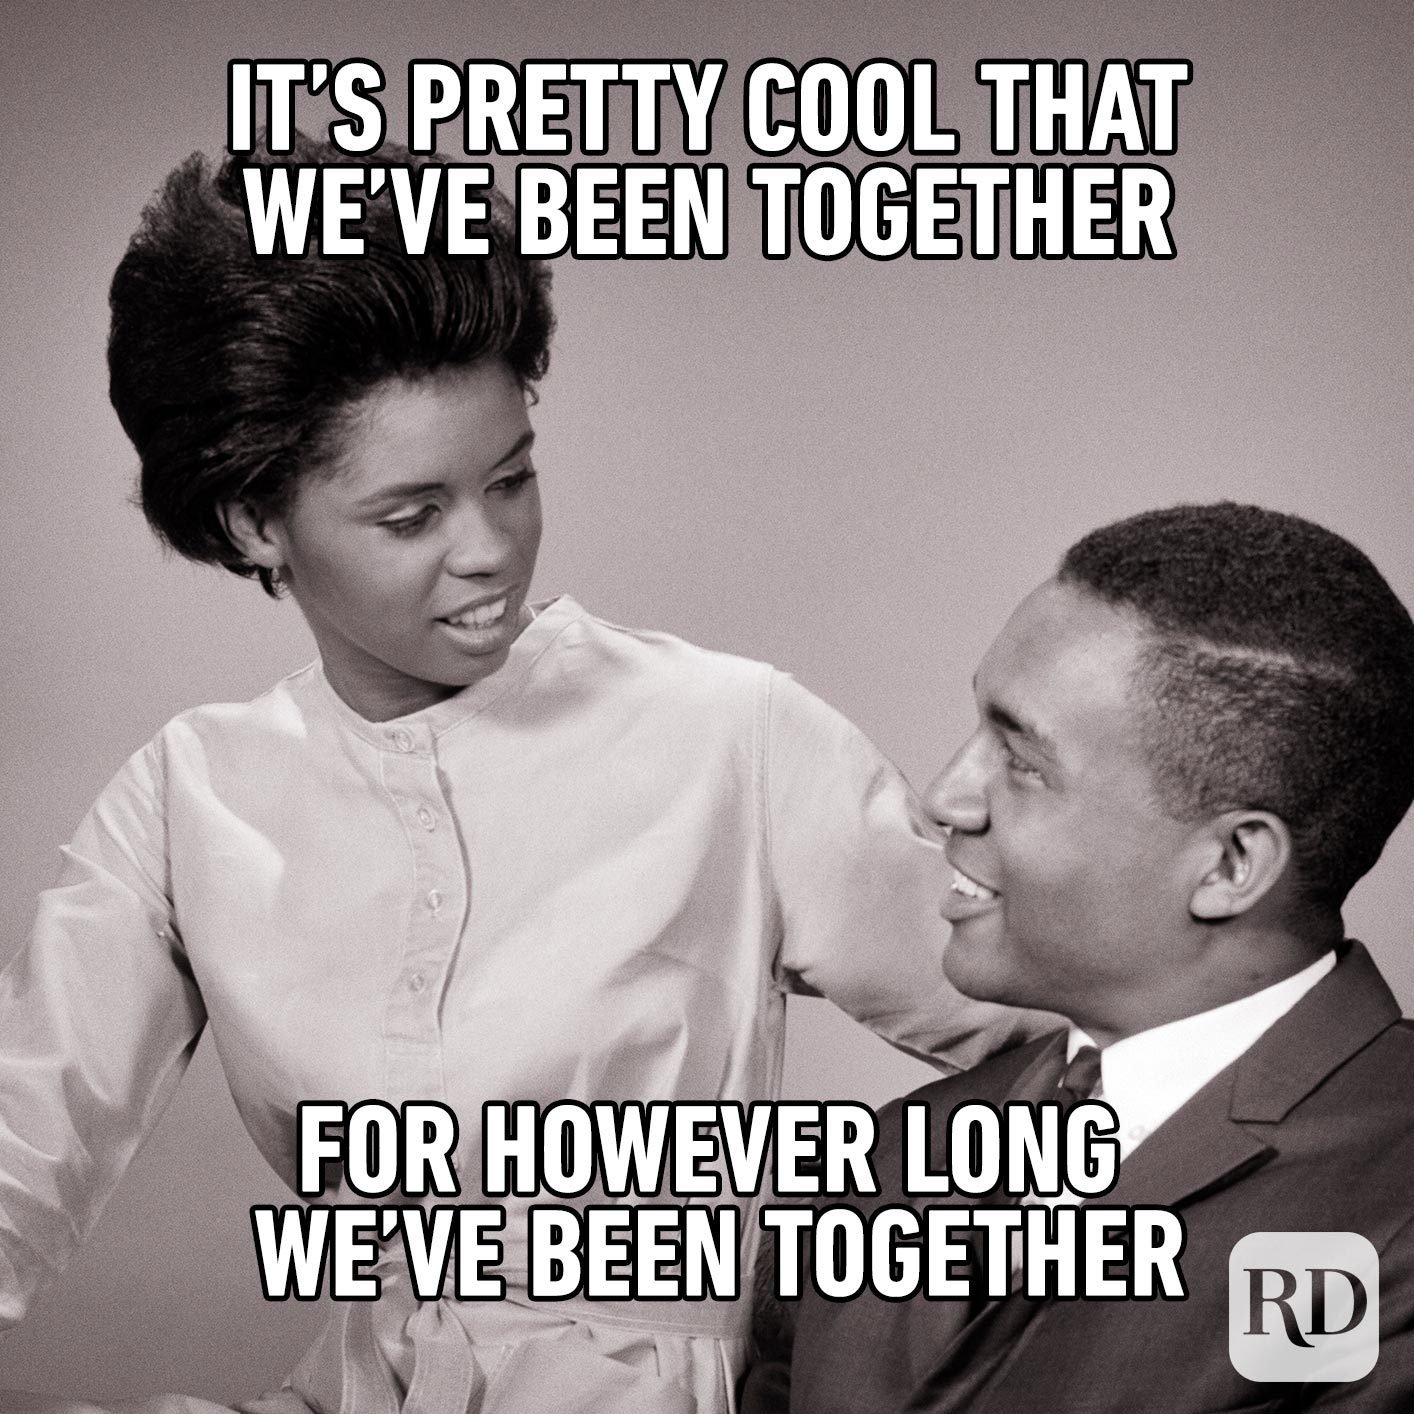 Couple staring at each other. Meme text: It's pretty cool that we've been together for however long we've been together